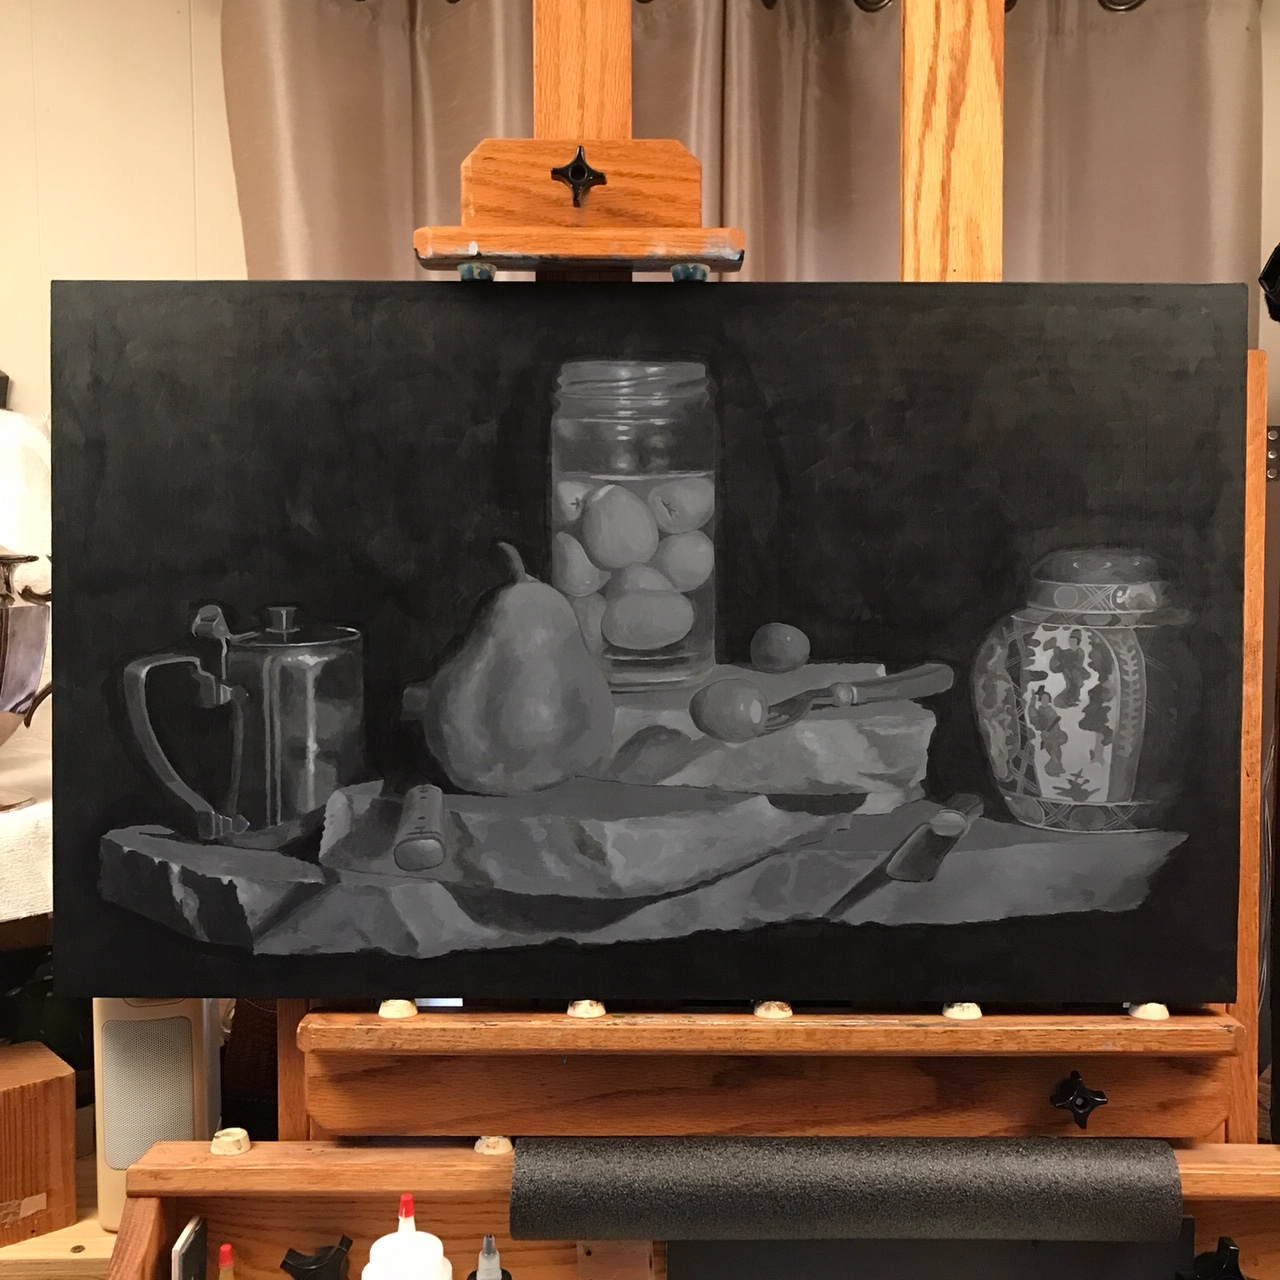 A completed grisaille for a larger painting